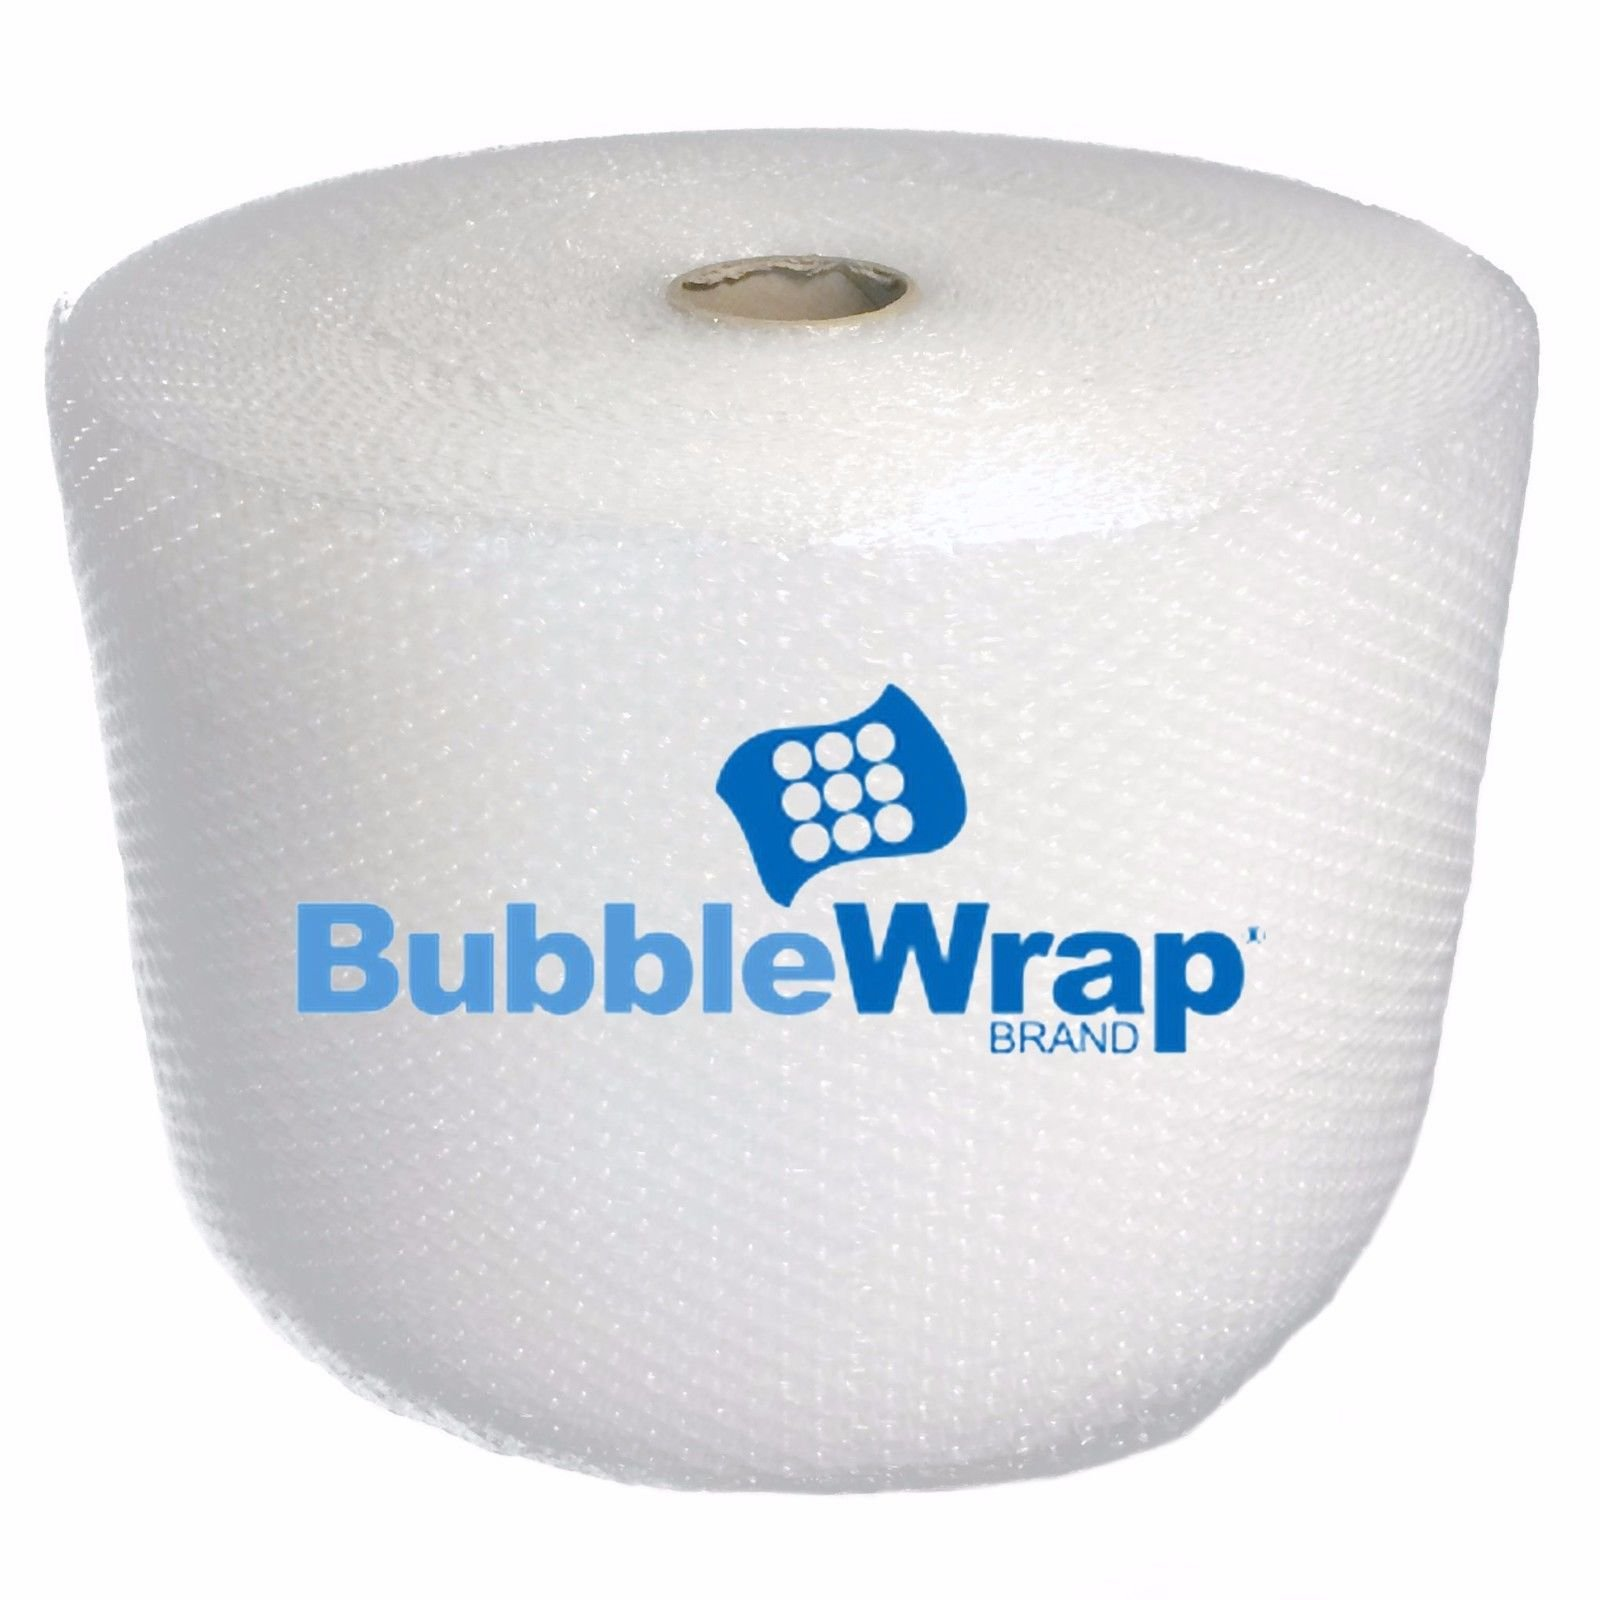 Bubble WRAP Brand 3/16''- 700 ft x 12'' Perforated Every 12'' Made in U.S.A